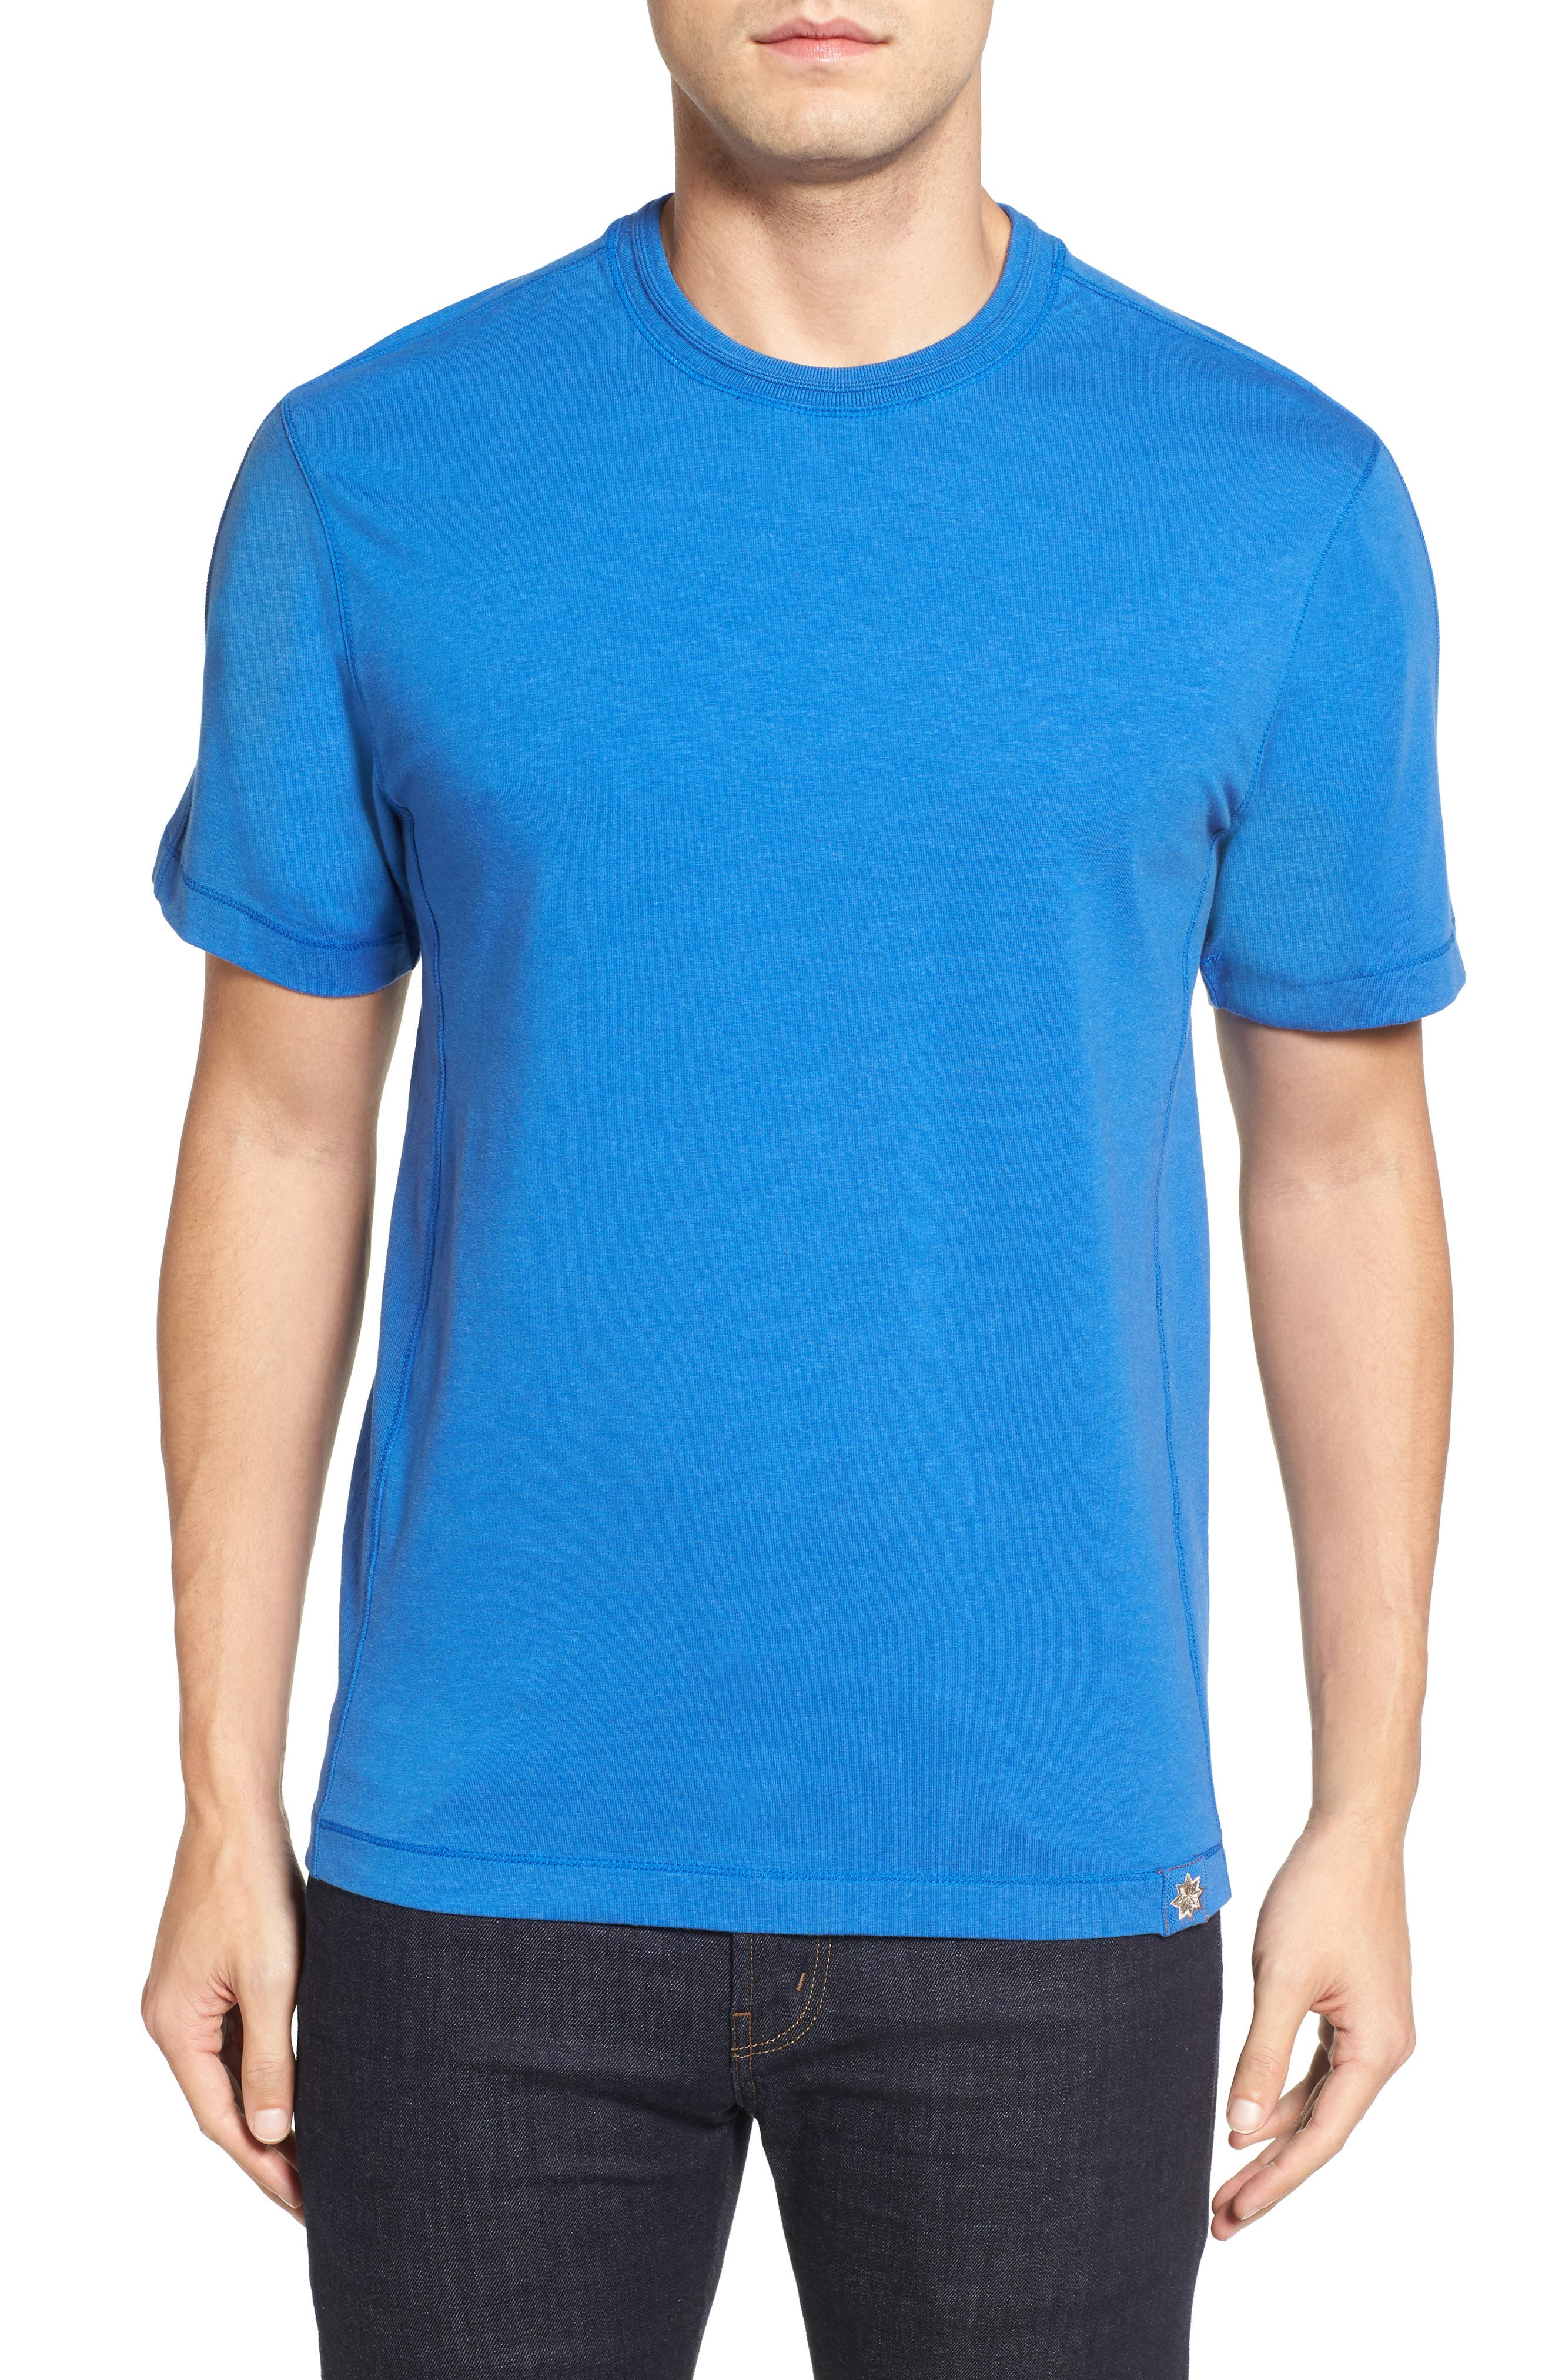 Steve Stretch Jersey T-Shirt,                             Main thumbnail 4, color,